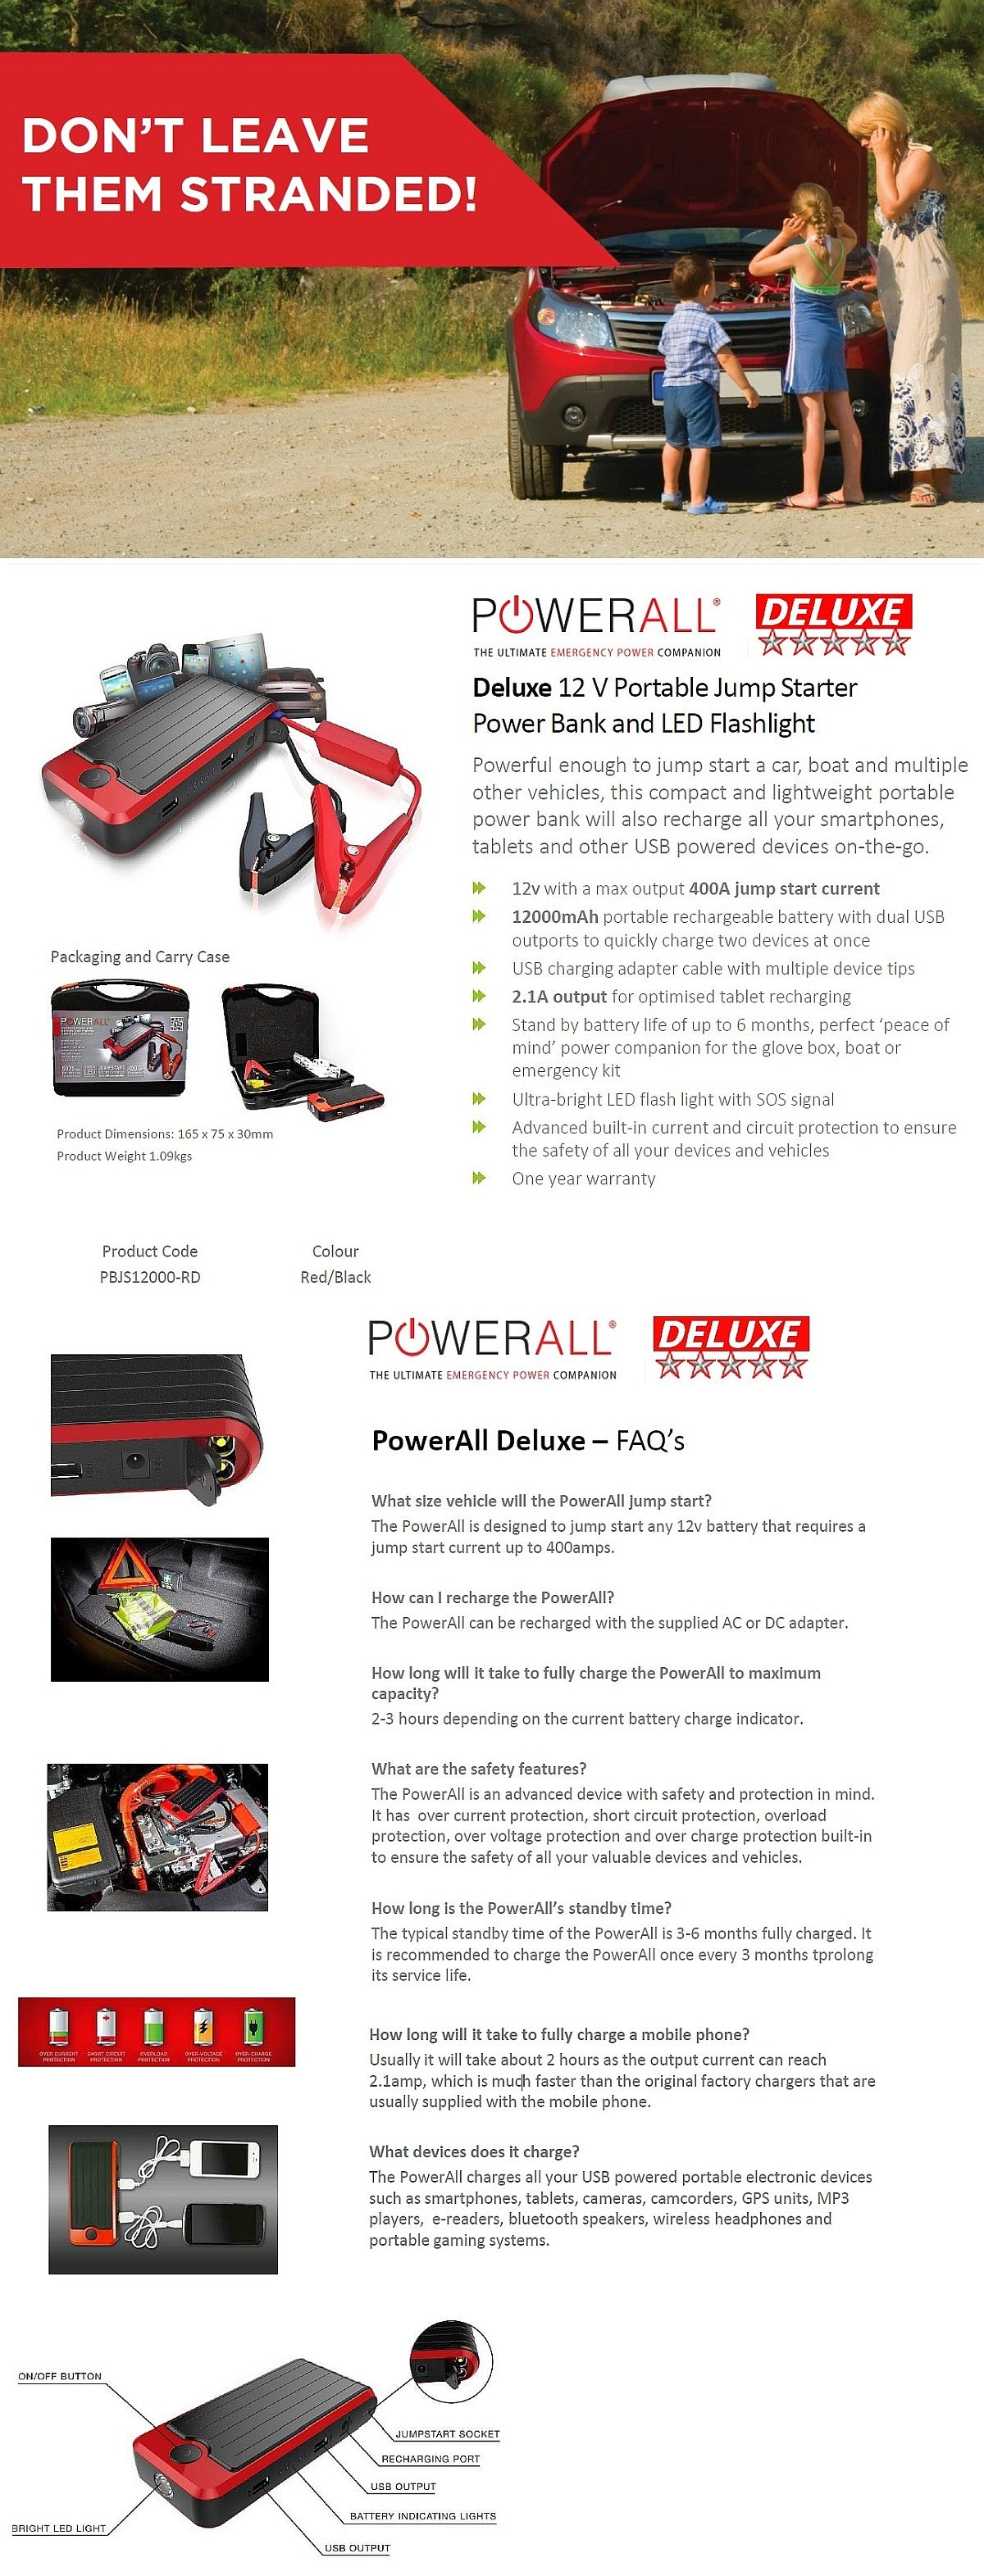 PowerAll Deluxe FAQ